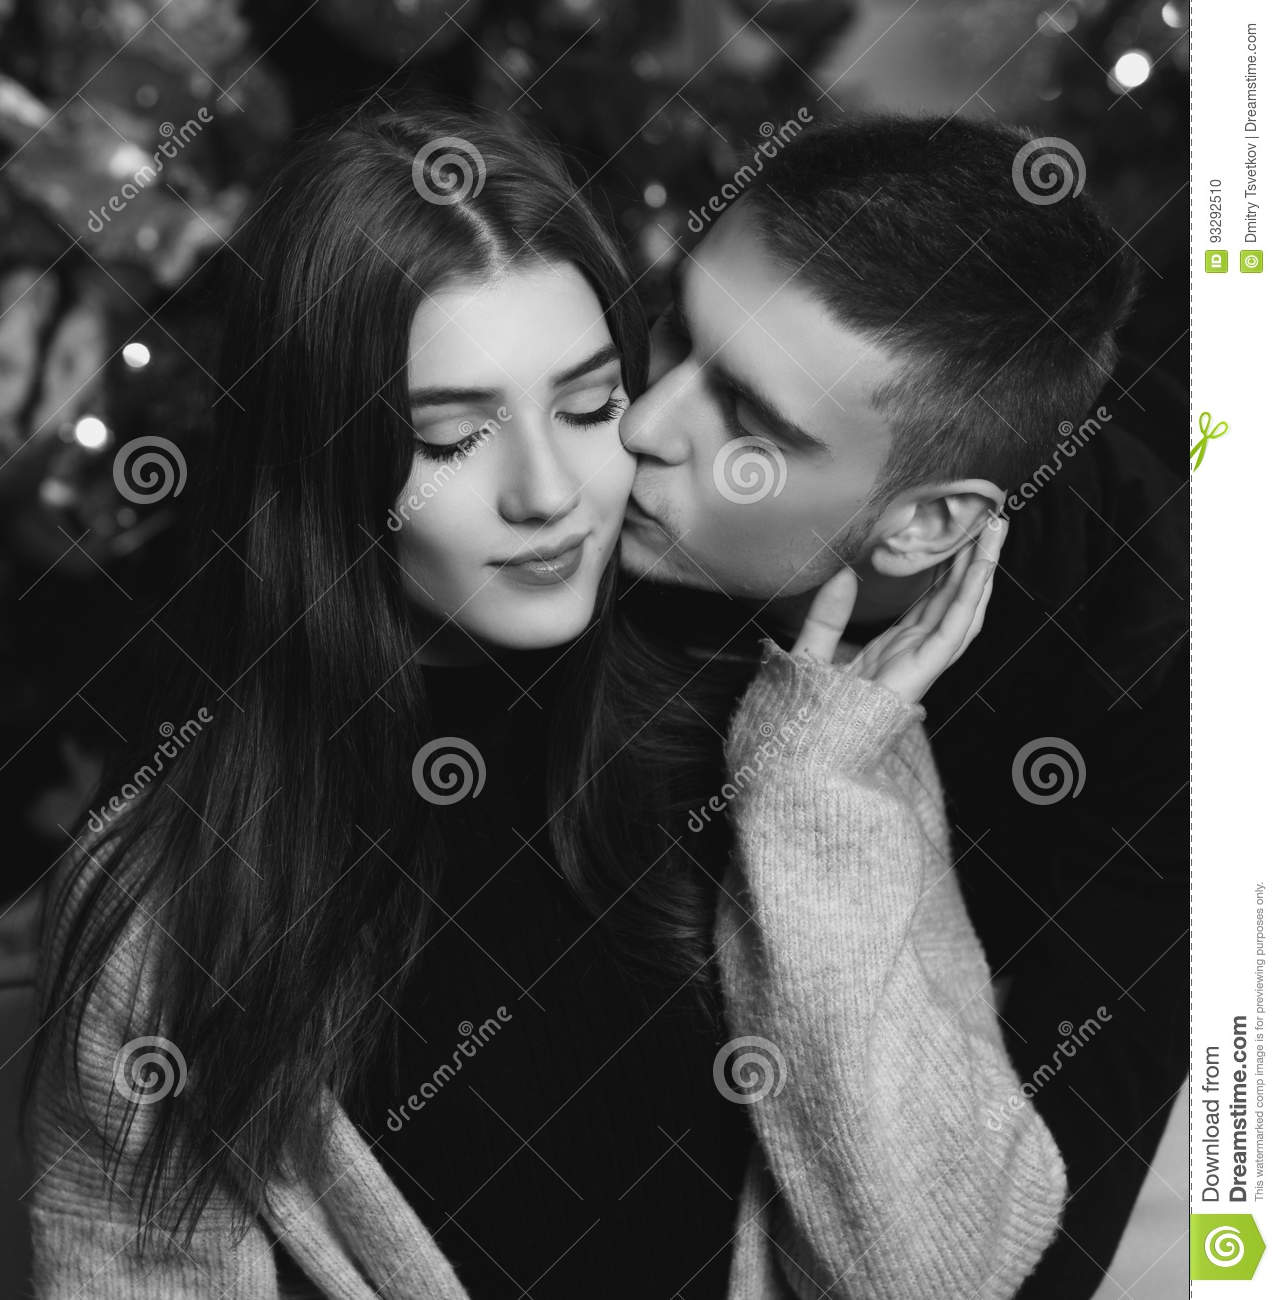 Young romantic cute couple staing at home and enjoying time together lovers hugging in cristmas decorated interior